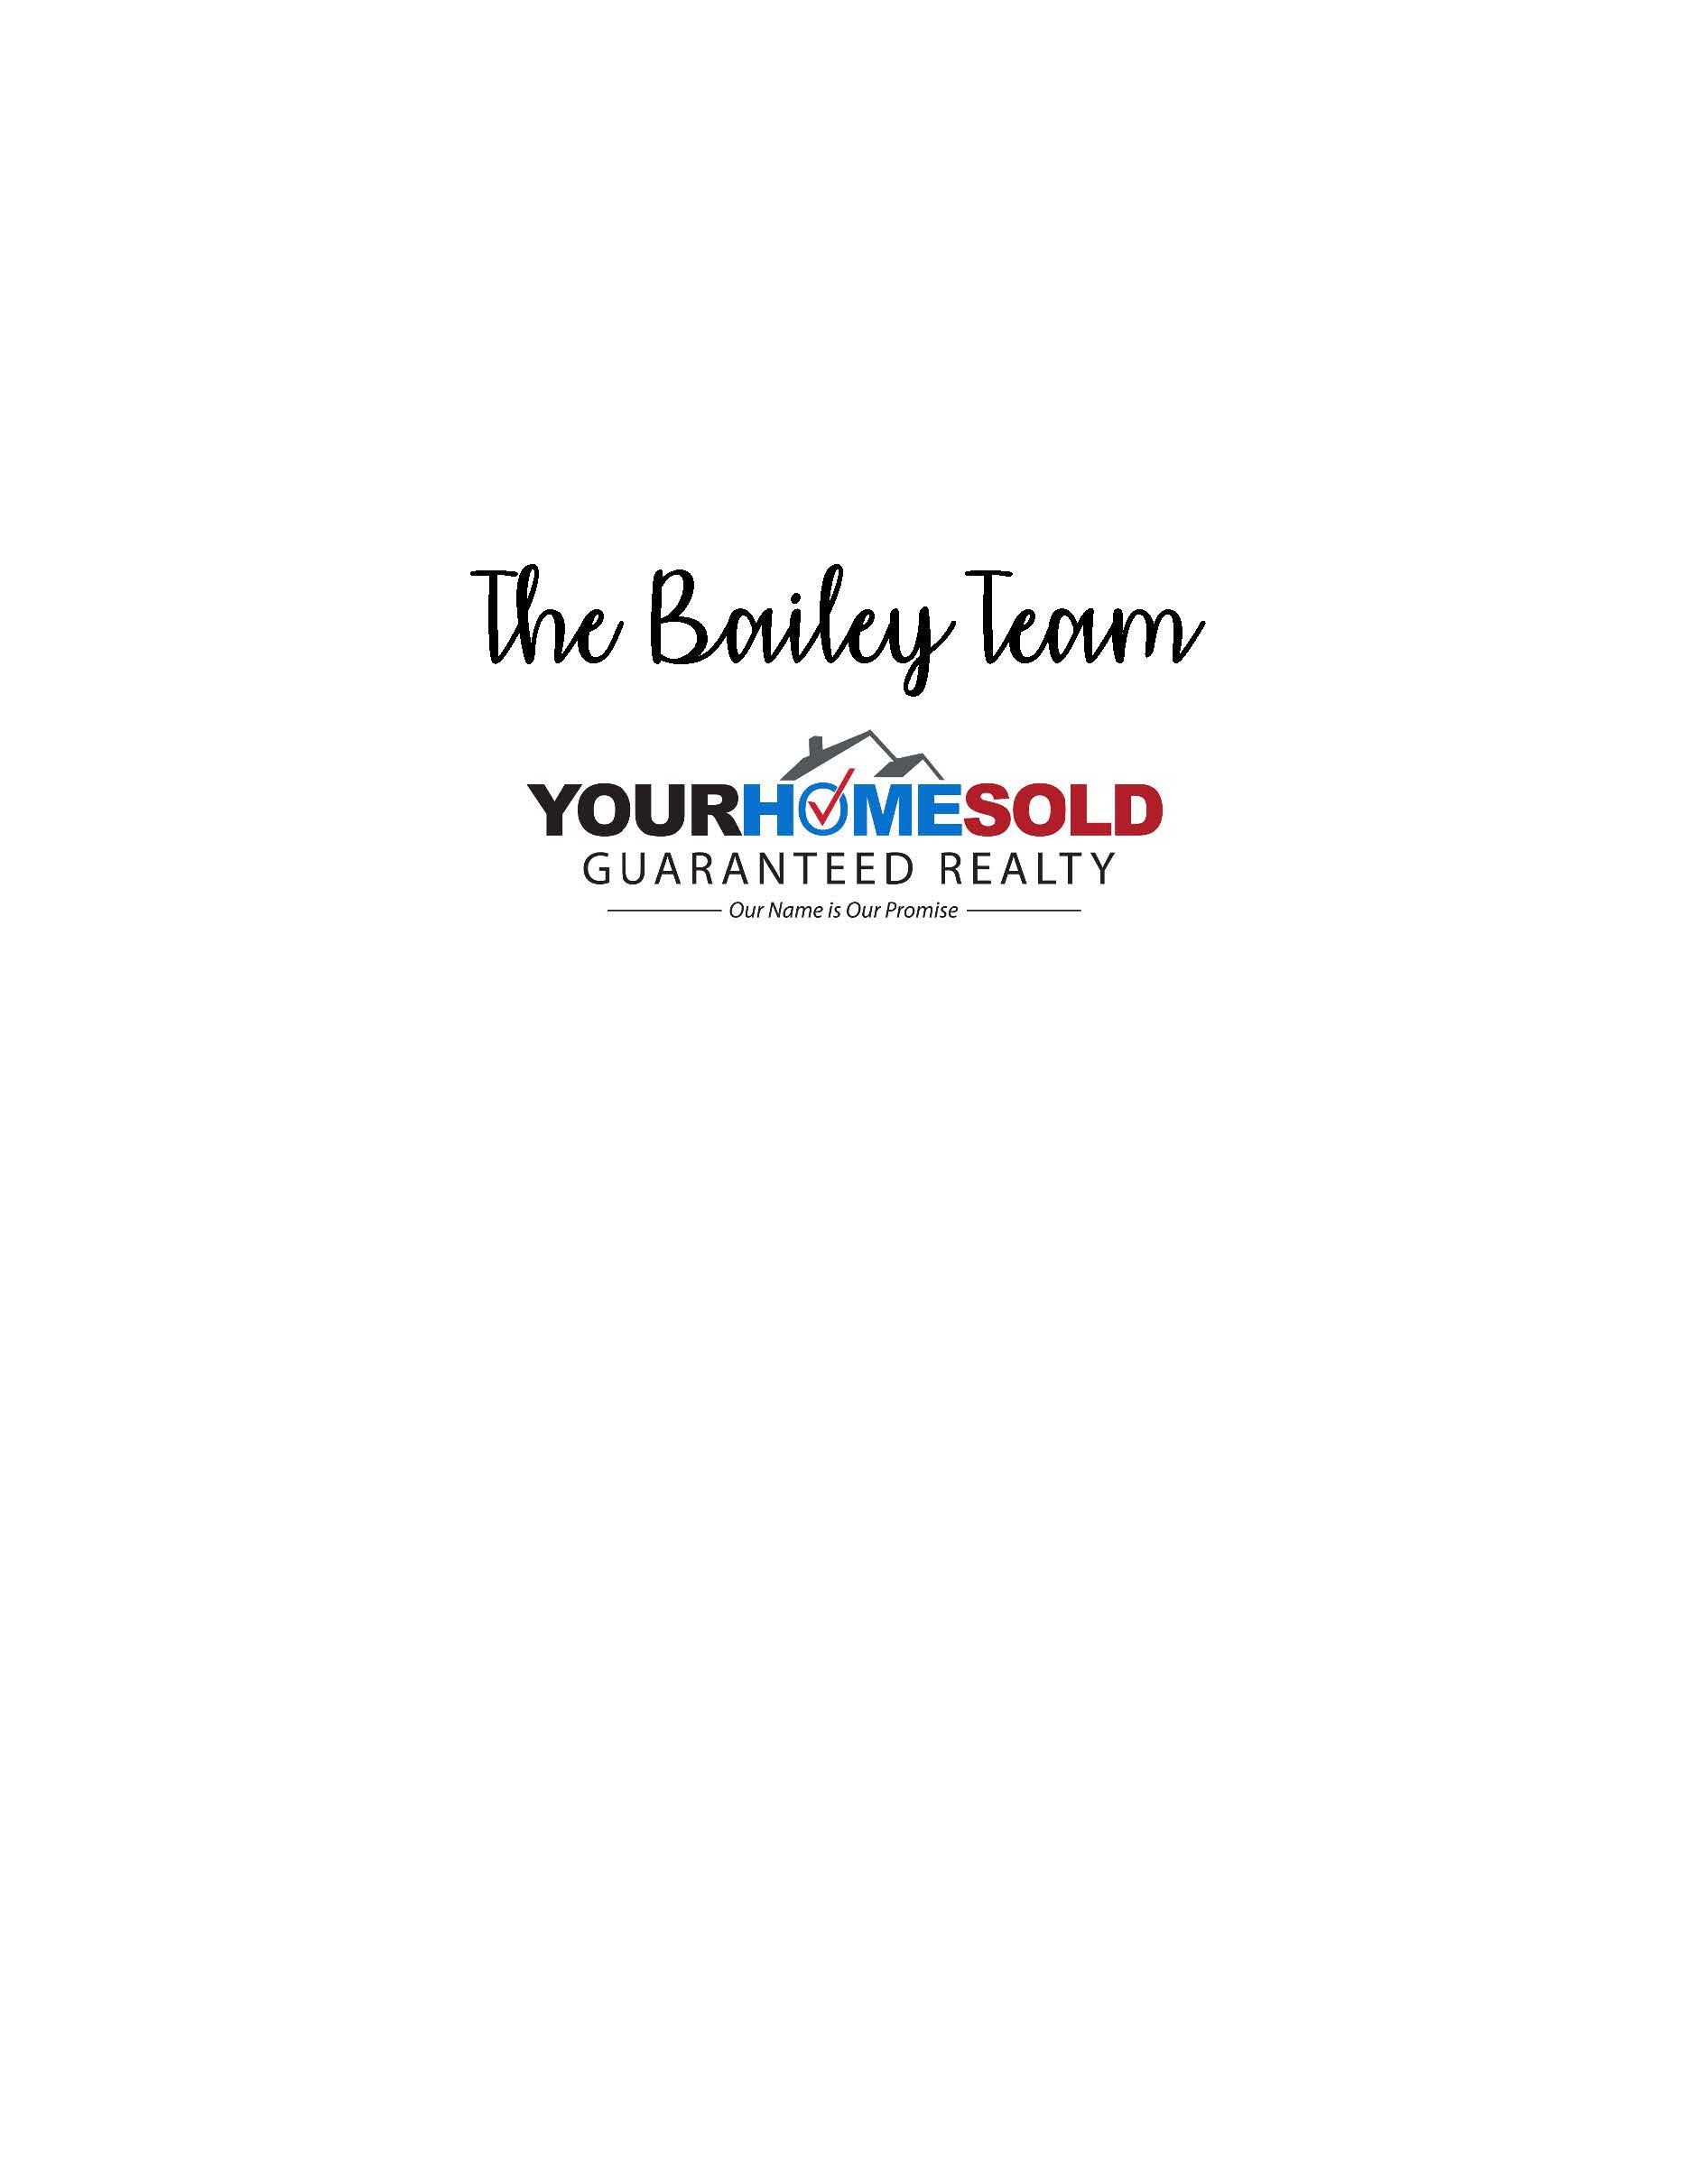 The Bailey Team - Your Home Sold Guaranteed Logo